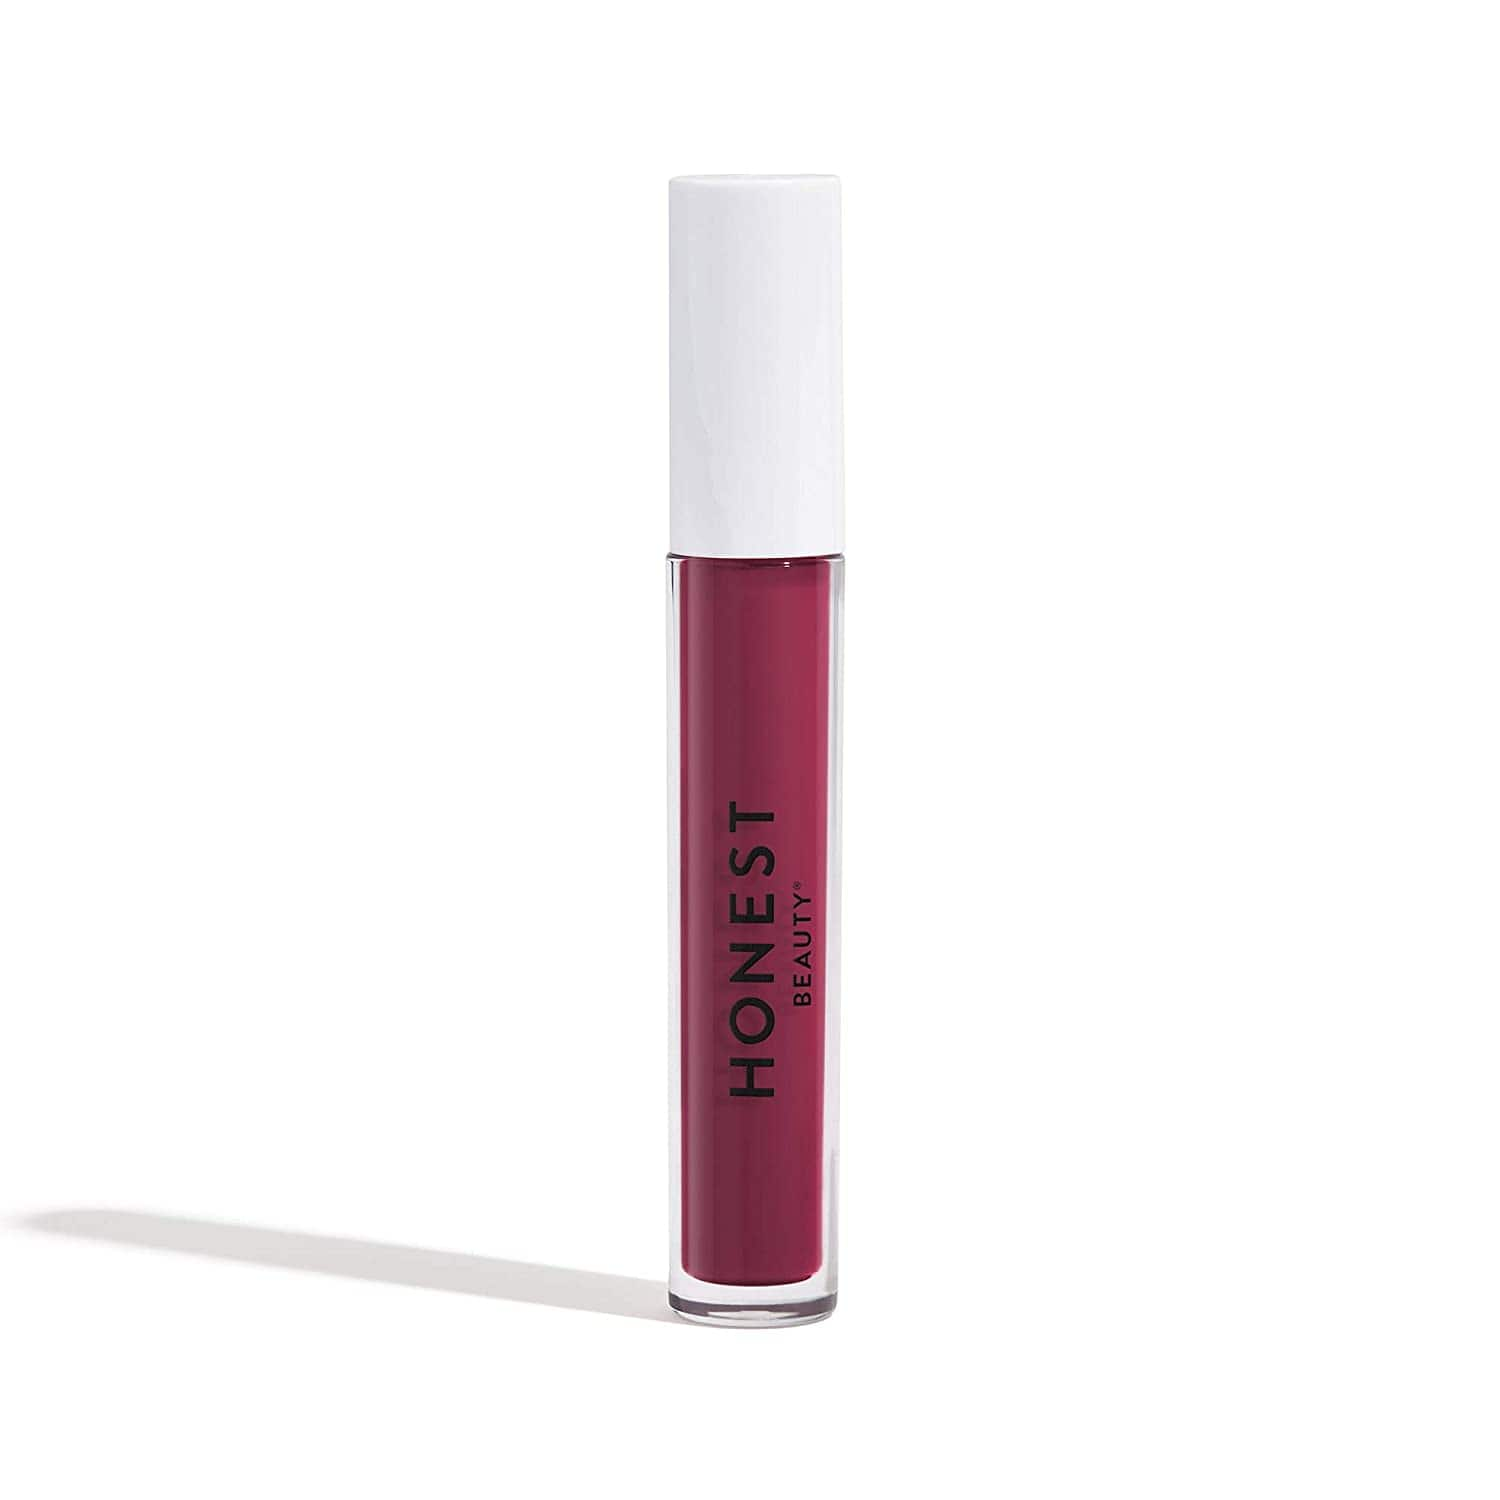 Honest Beauty Liquid Lipstick (Fearless) $4.25 w/ S&S + Free Shipping w/ Prime or Orders $25+